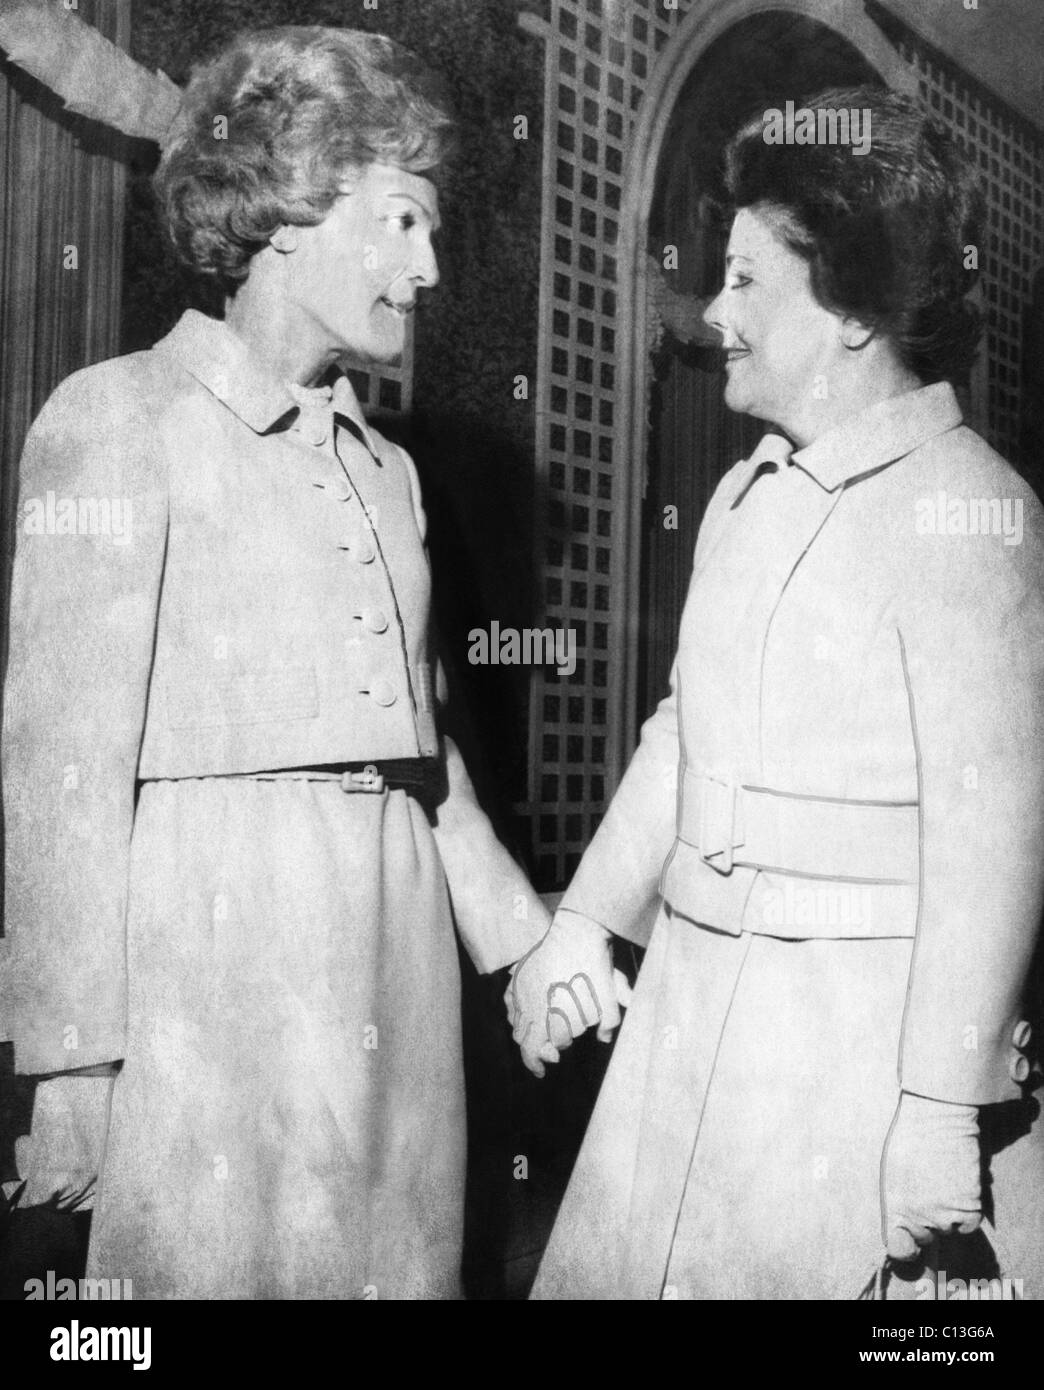 First Lady Patricia Nixon hold hands with Second Lady Judy Agnew (wife of Vice President Spiro Agnew). - Stock Image